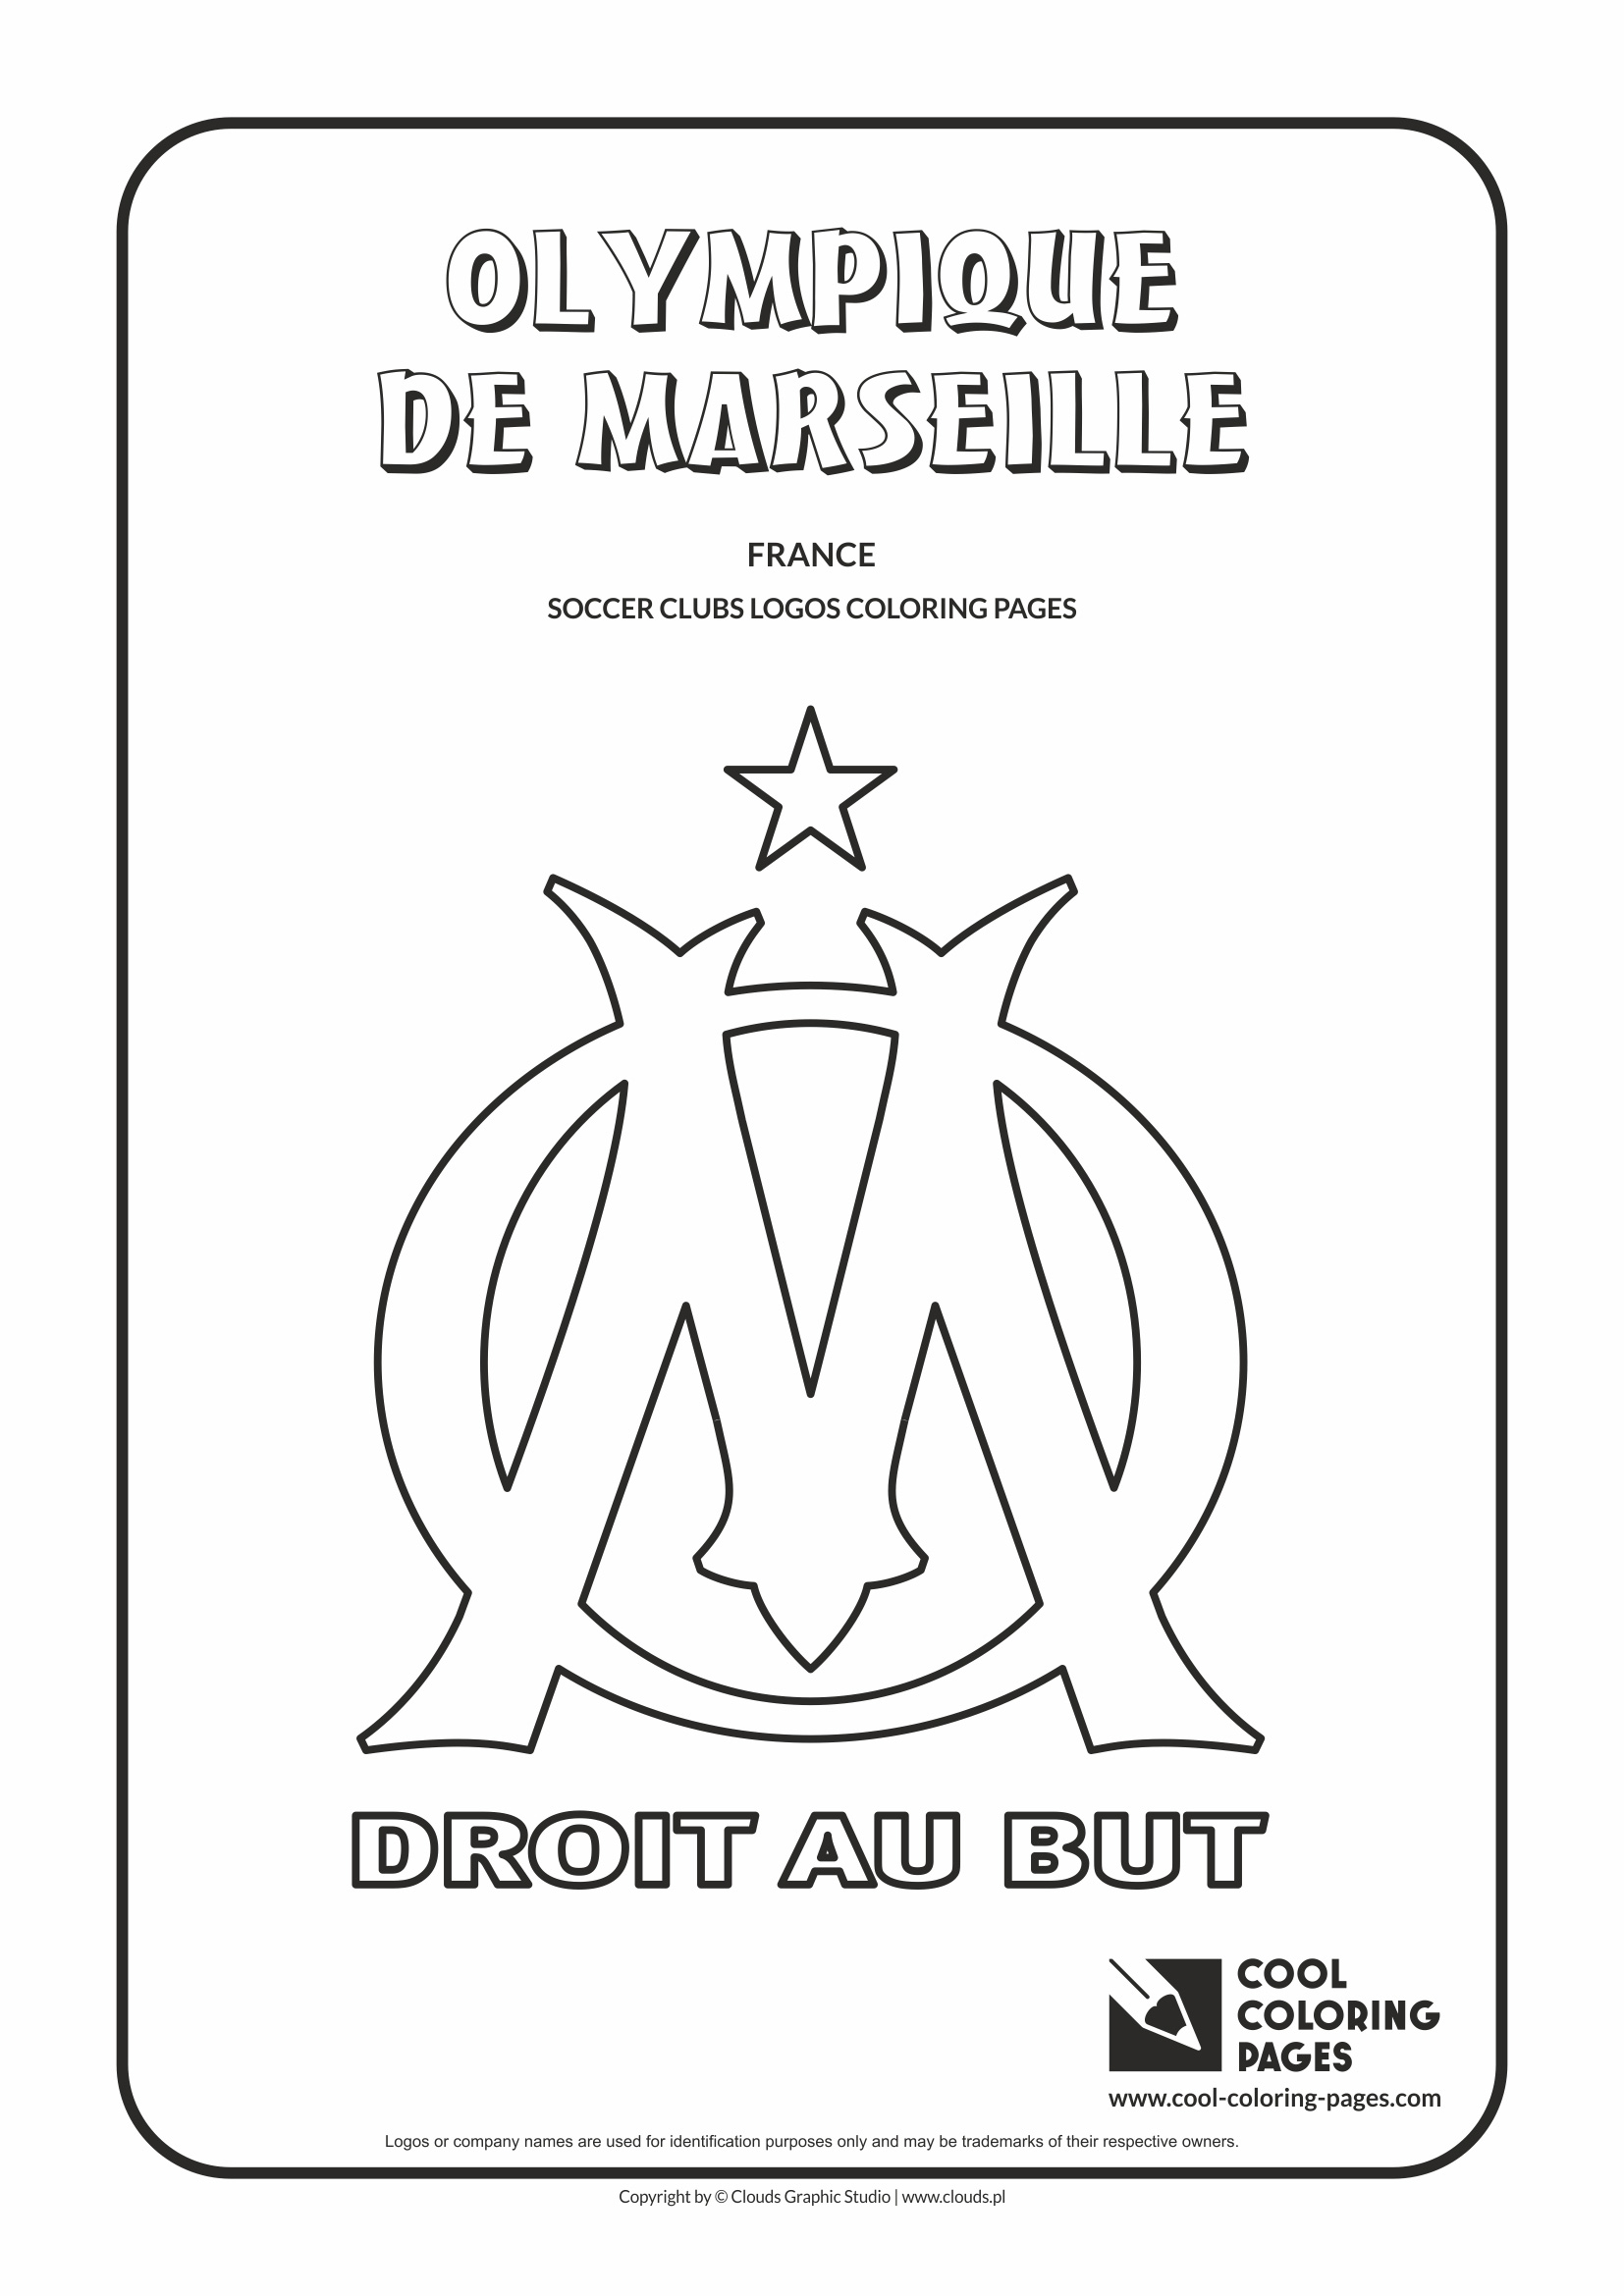 Olympique de Marseille logo coloring / Coloring page with Olympique Marsylia | Cool Coloring Pages